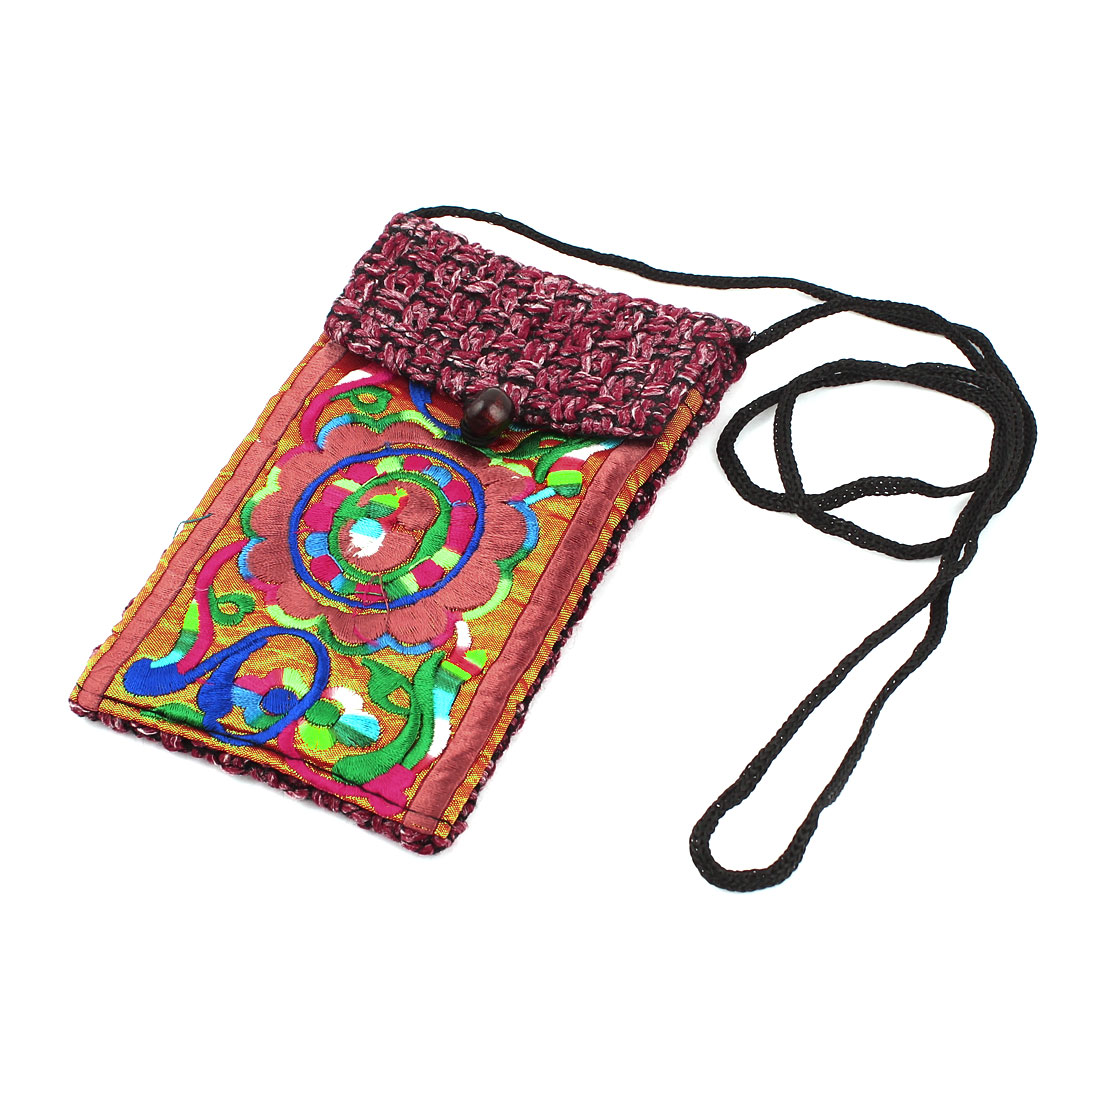 Red Orange Embroidery Floral Pattern Hand Strap Knitting Smartphone Pouch Bag